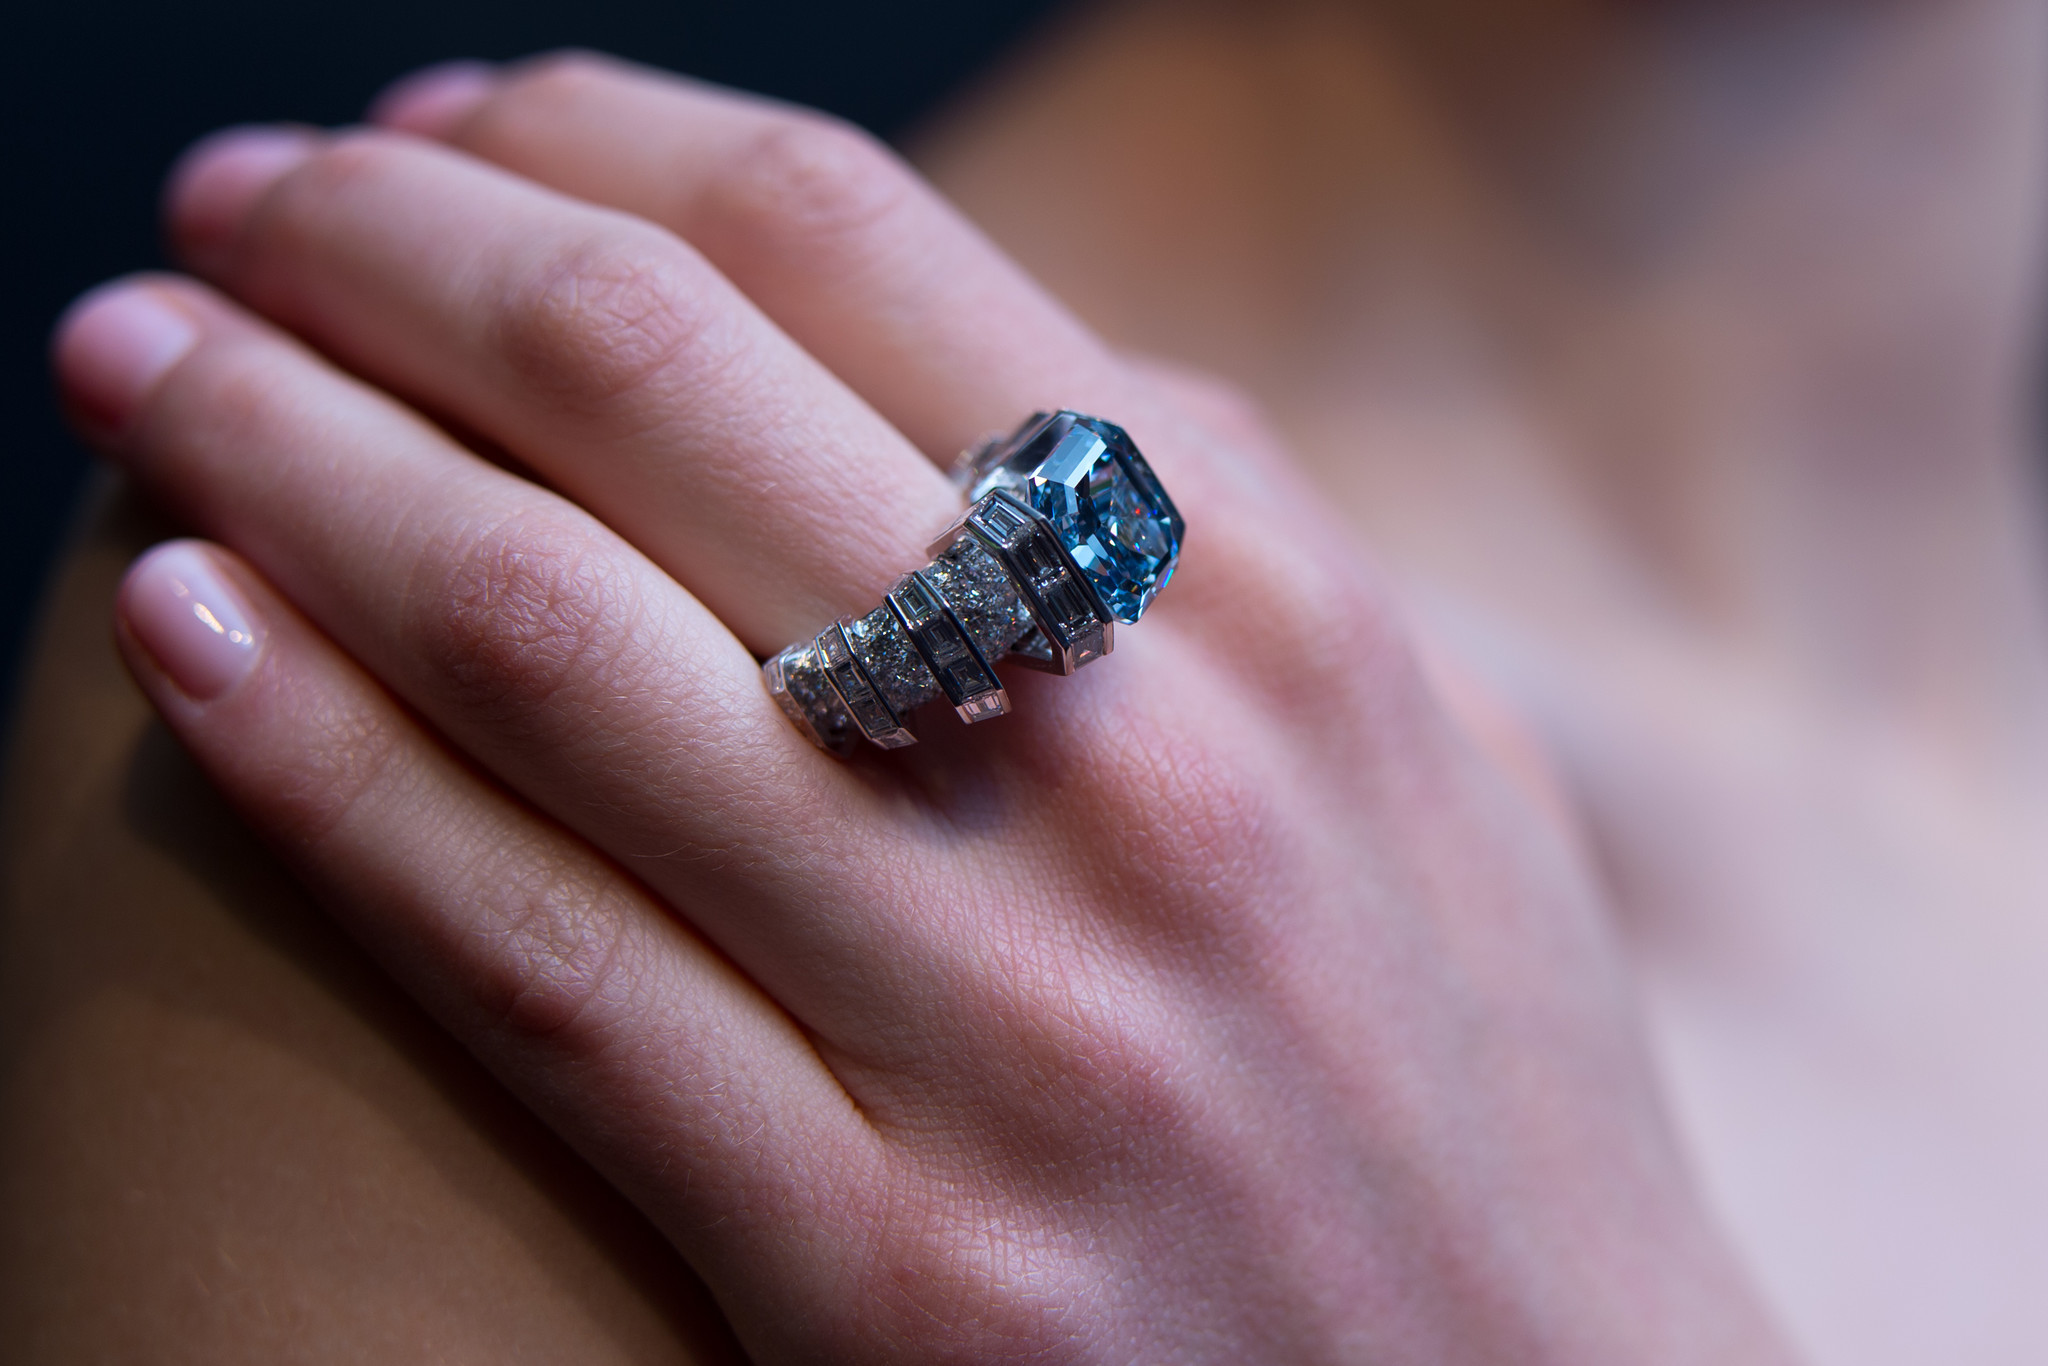 Blue diamond ring could fetch $25 million in British auction